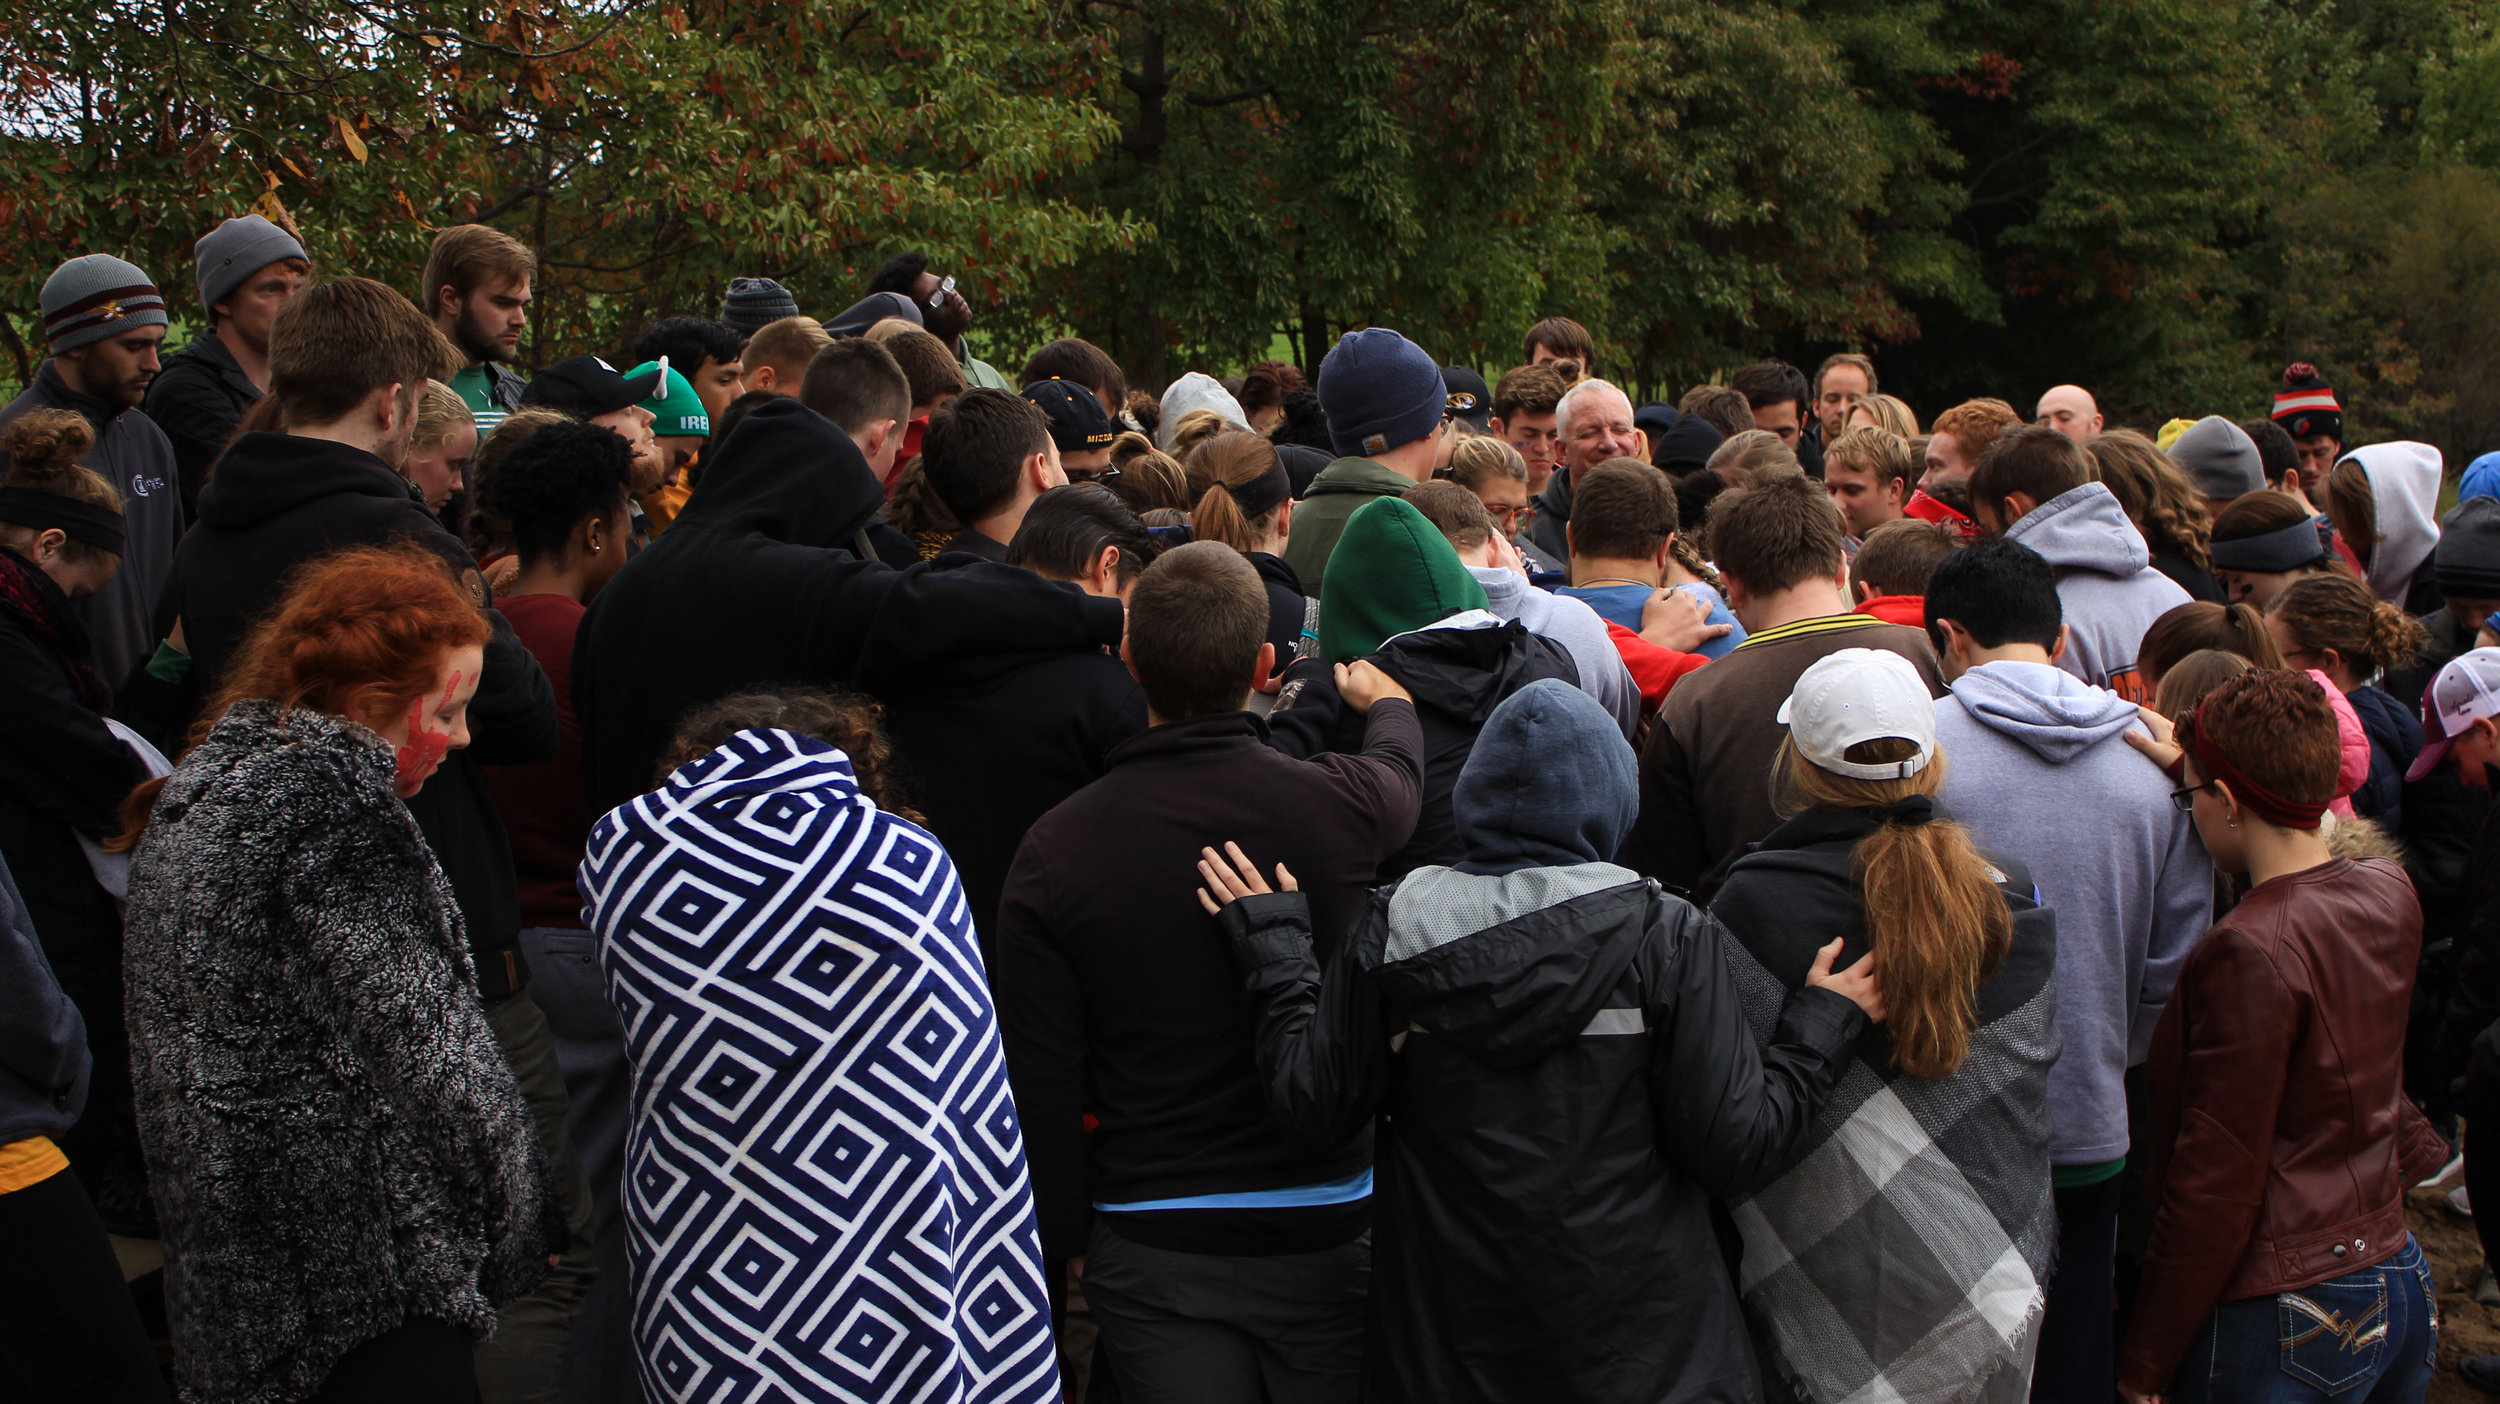 Our students praying at our annual Fall Retreat